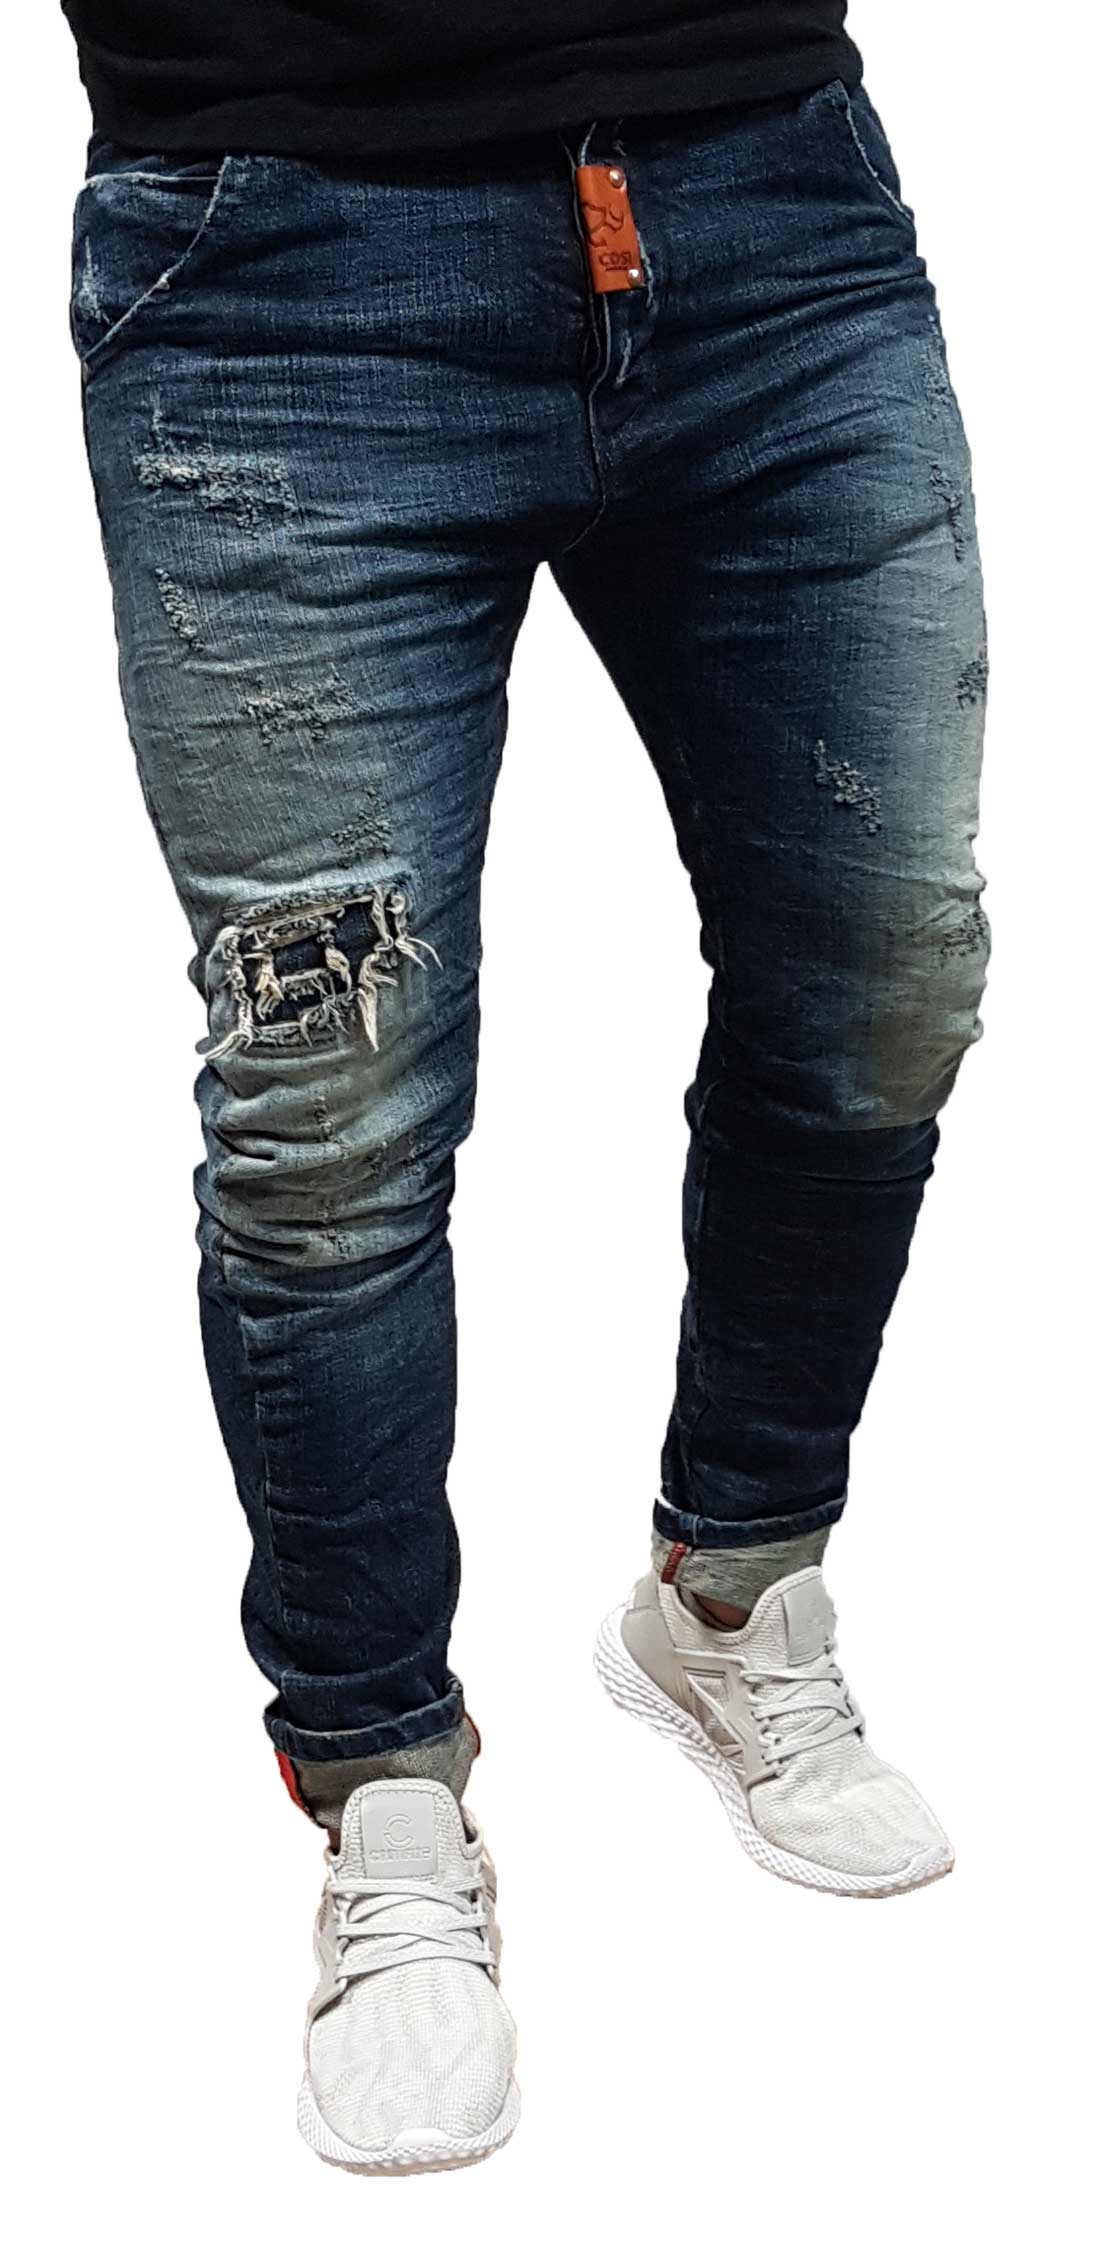 Cosi - 52-Bentley 1 - Blue - Παντελόνι Jeans - Glami.gr e5fc60c2638